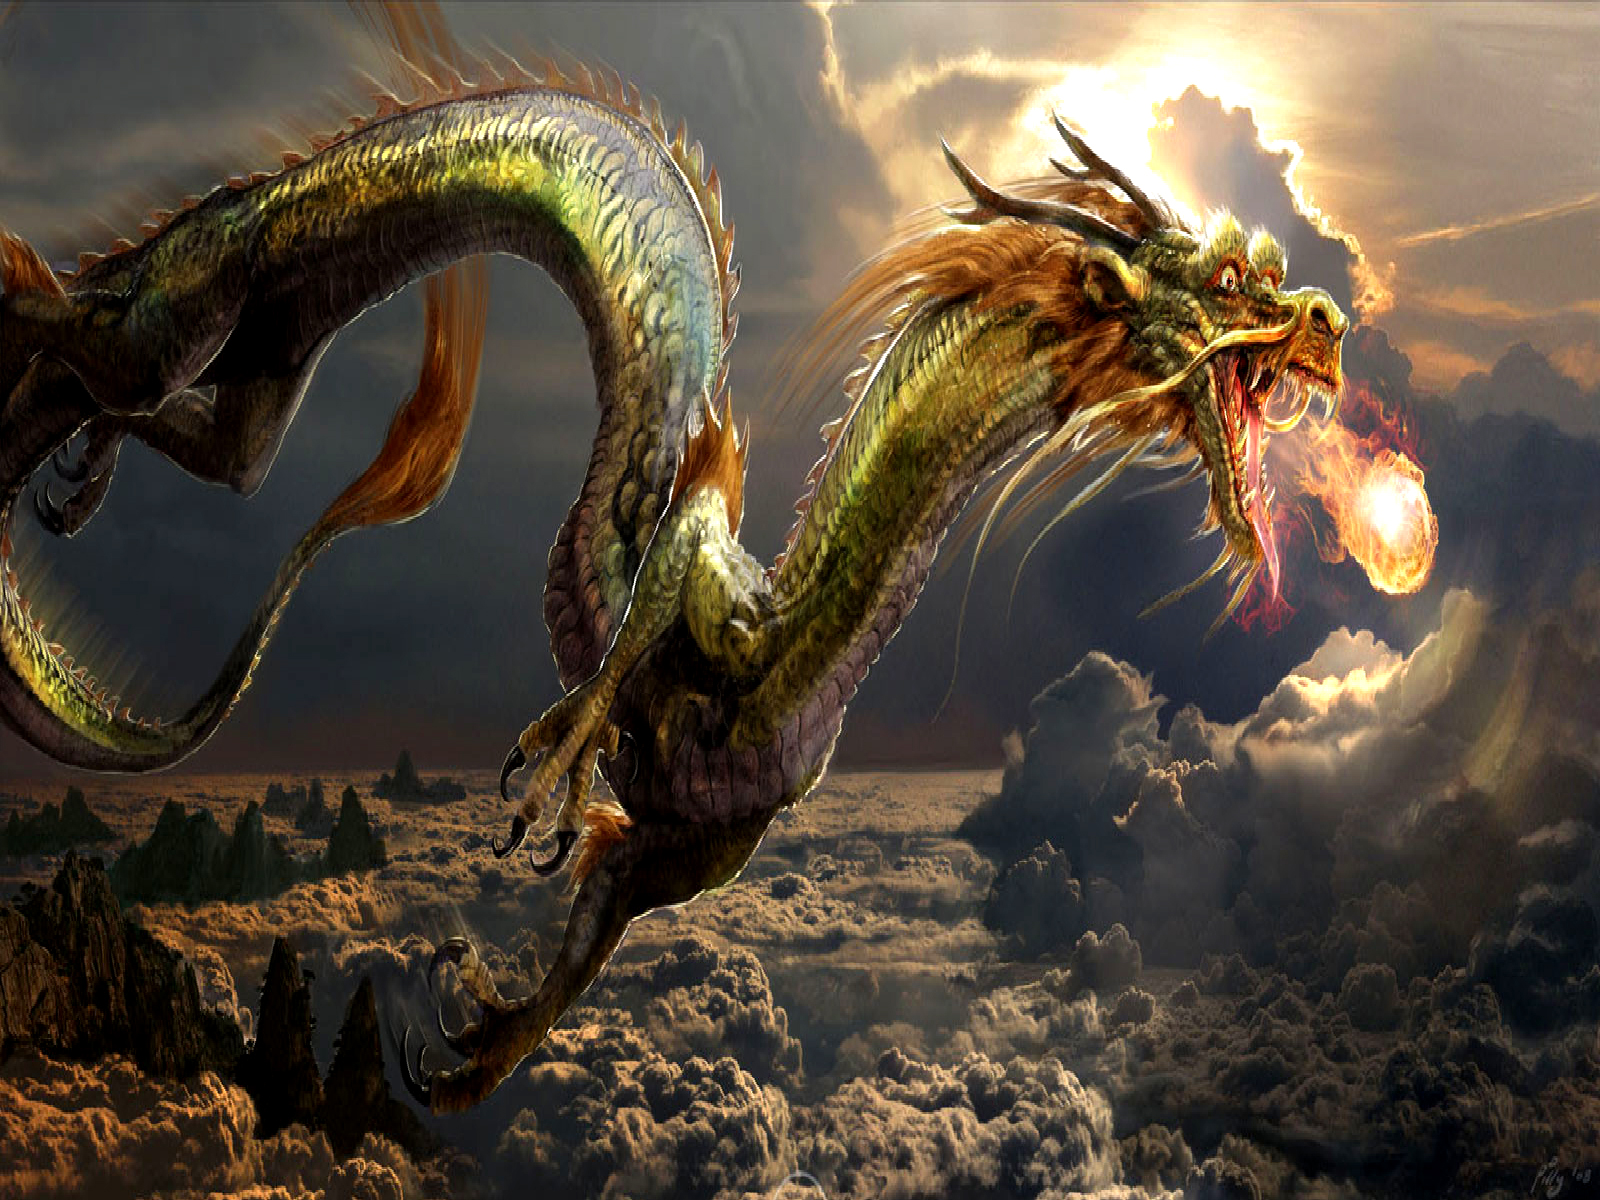 The Dragon Pearl Computer Wallpapers Desktop Backgrounds  1600x1200